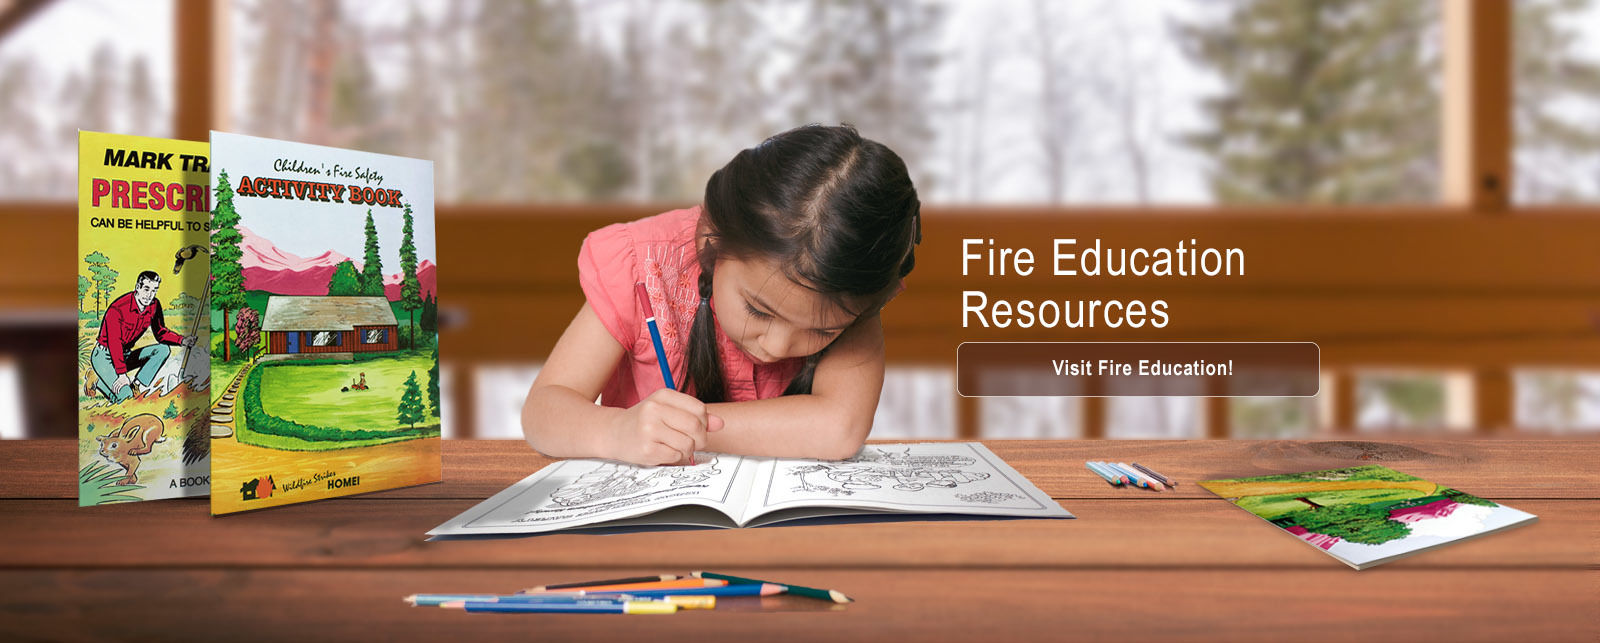 Symbols Cache - Fire Safety Education